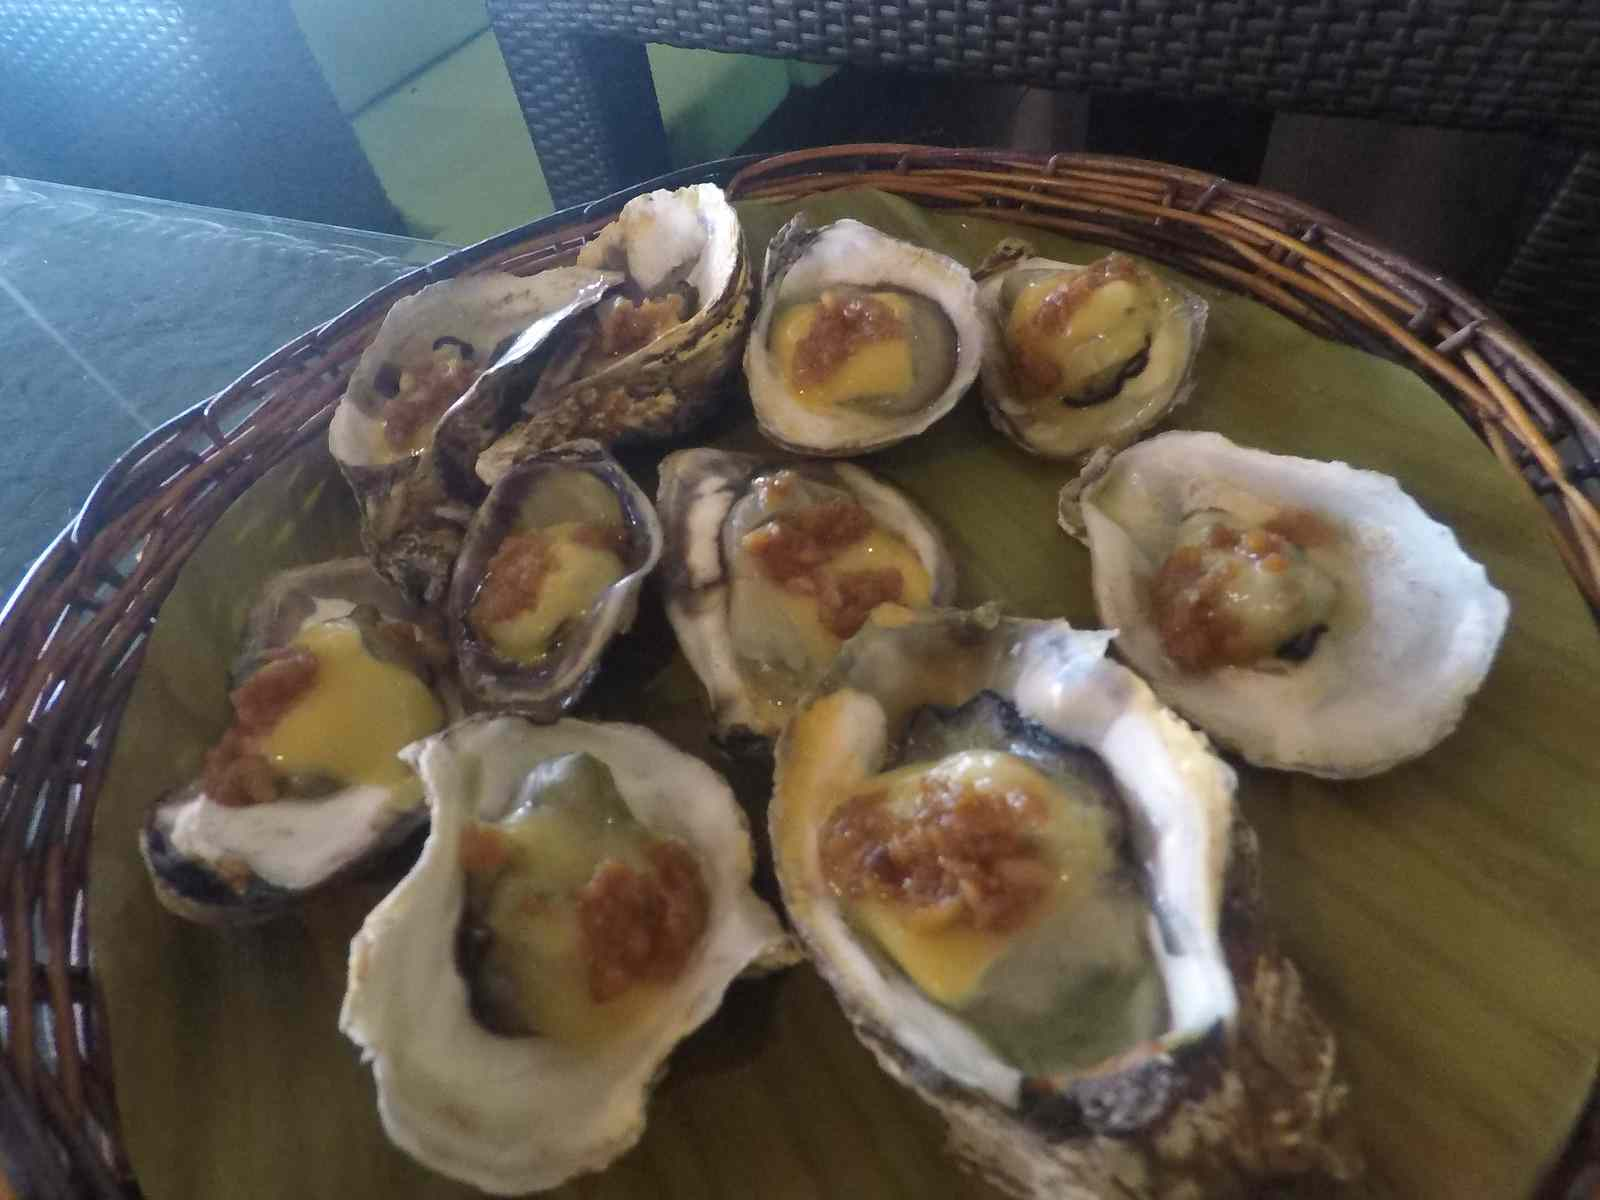 Baked oysters at Lantaw Seafood Restaurant